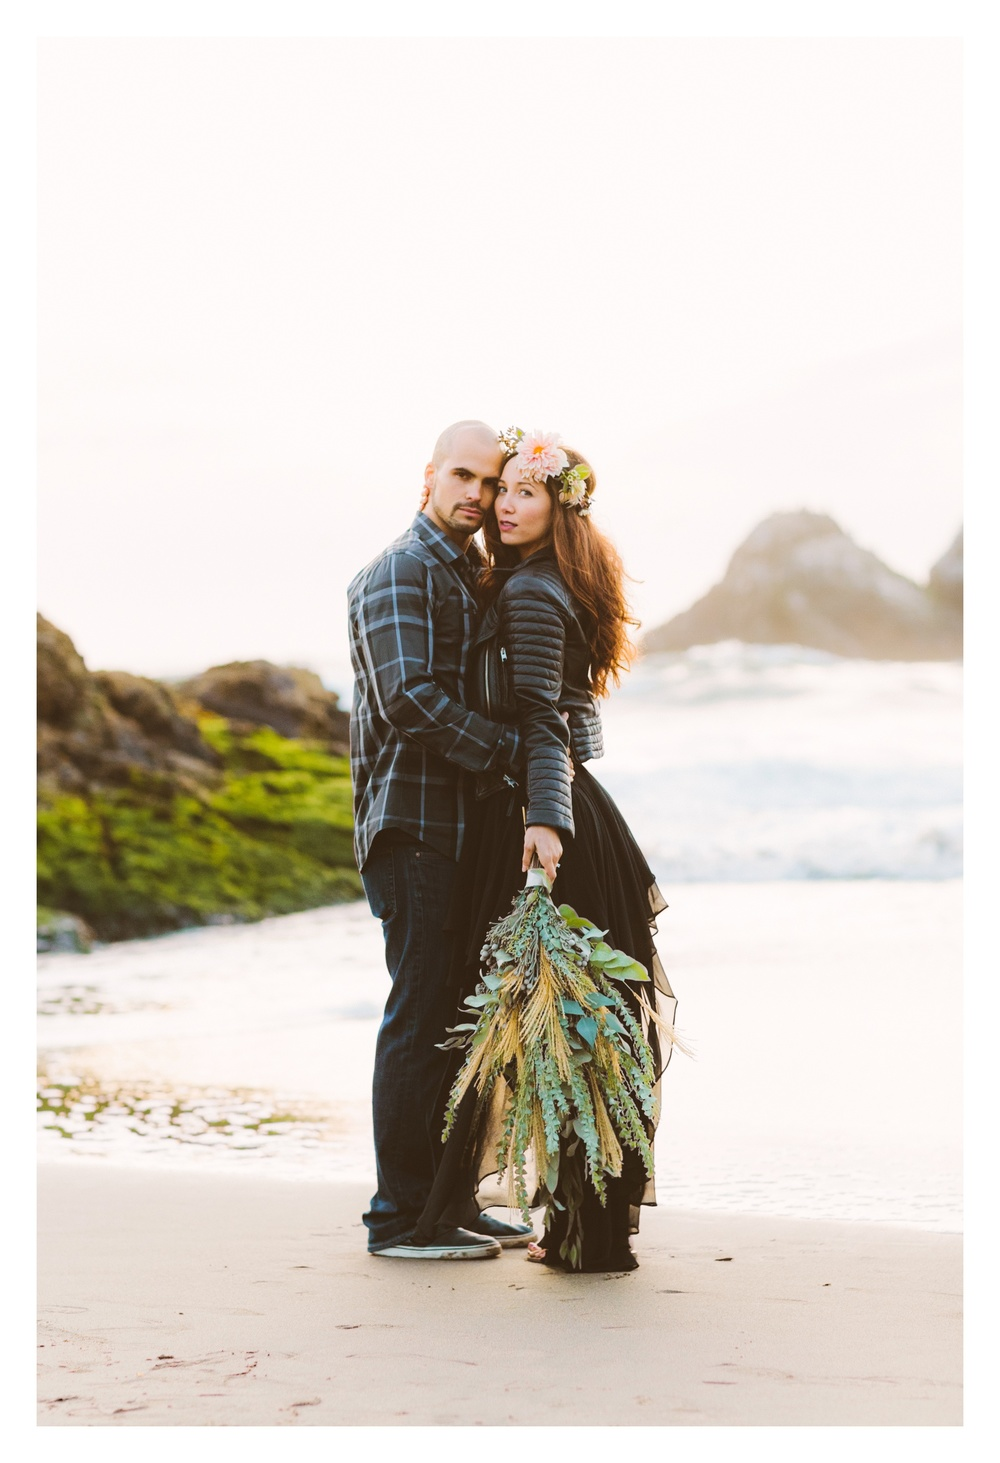 sutro baths engagement | victoria heer photography